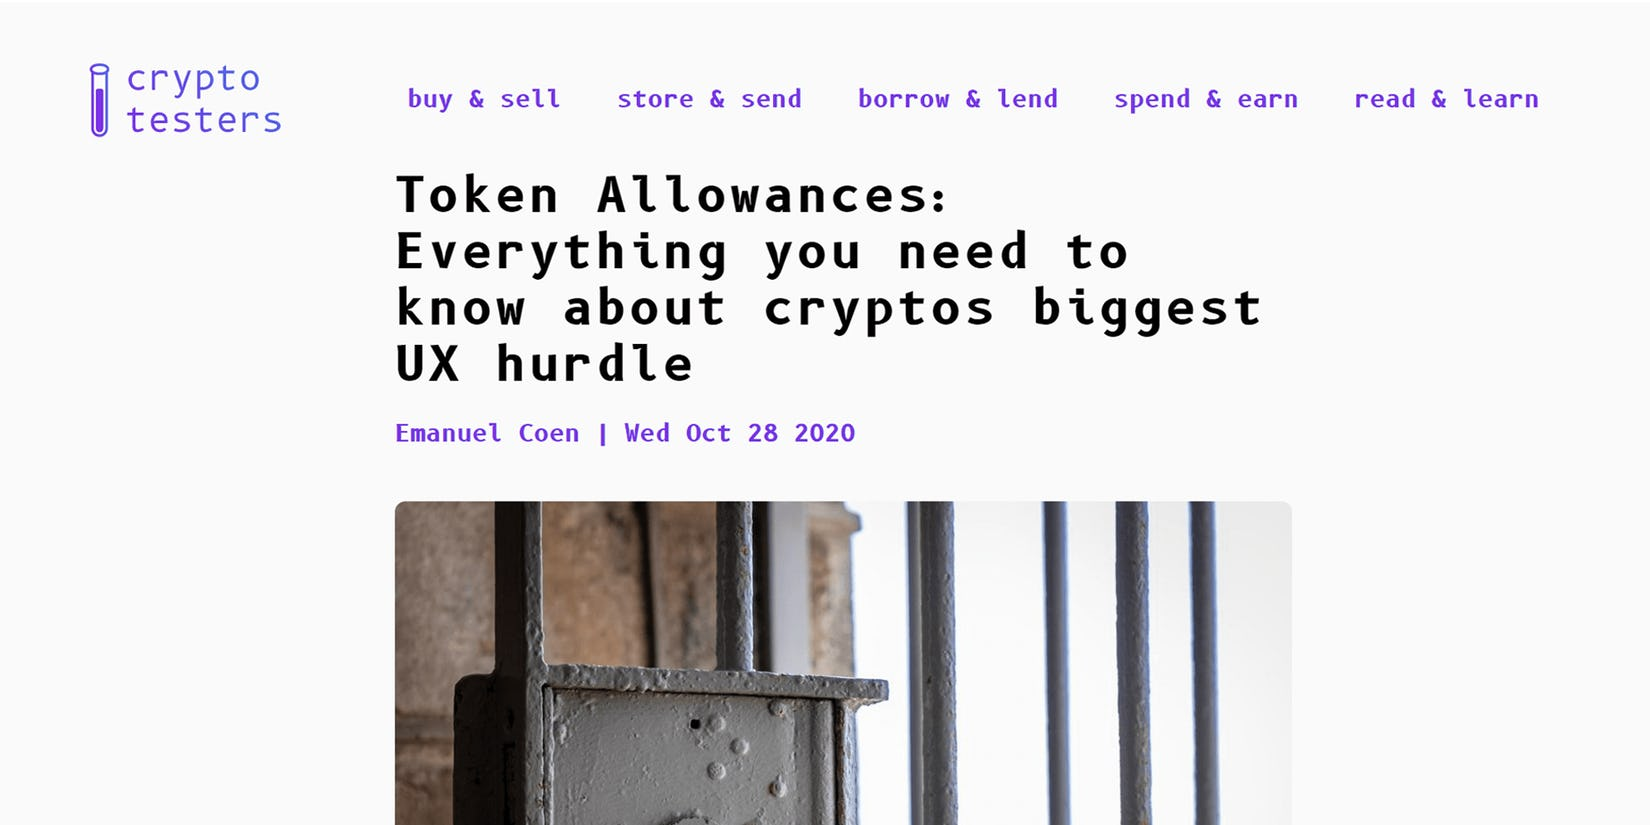 Token Allowances: Everything you need to know about crypto's biggest UX hurdle